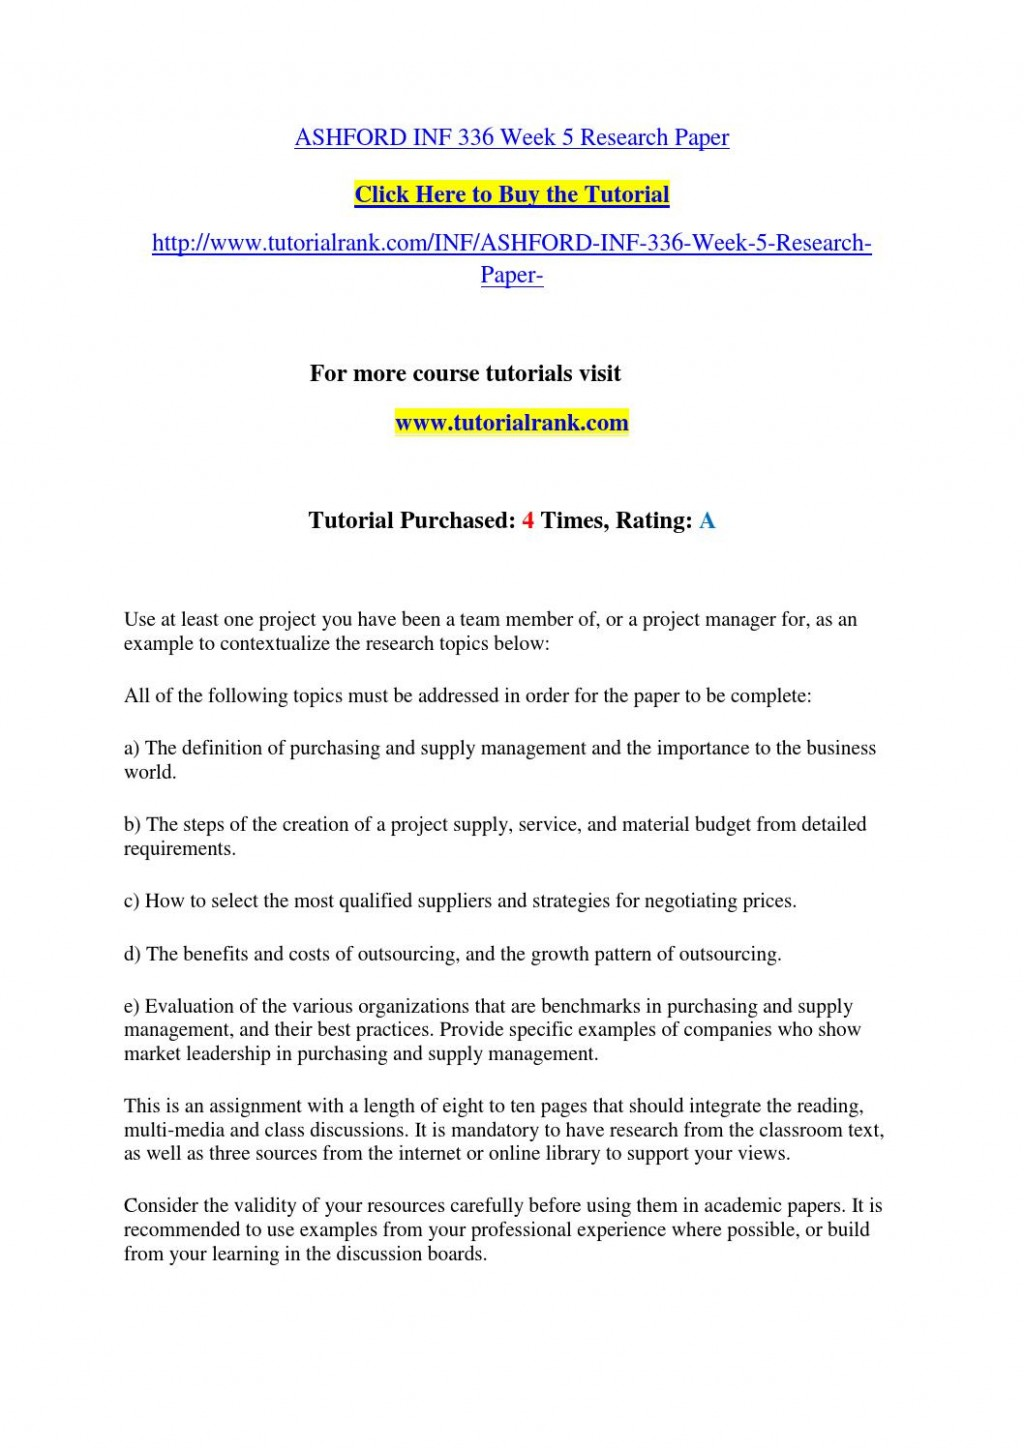 018 Research Paper Business Management Topics For Page 1 Unusual Techniques Pdf Large